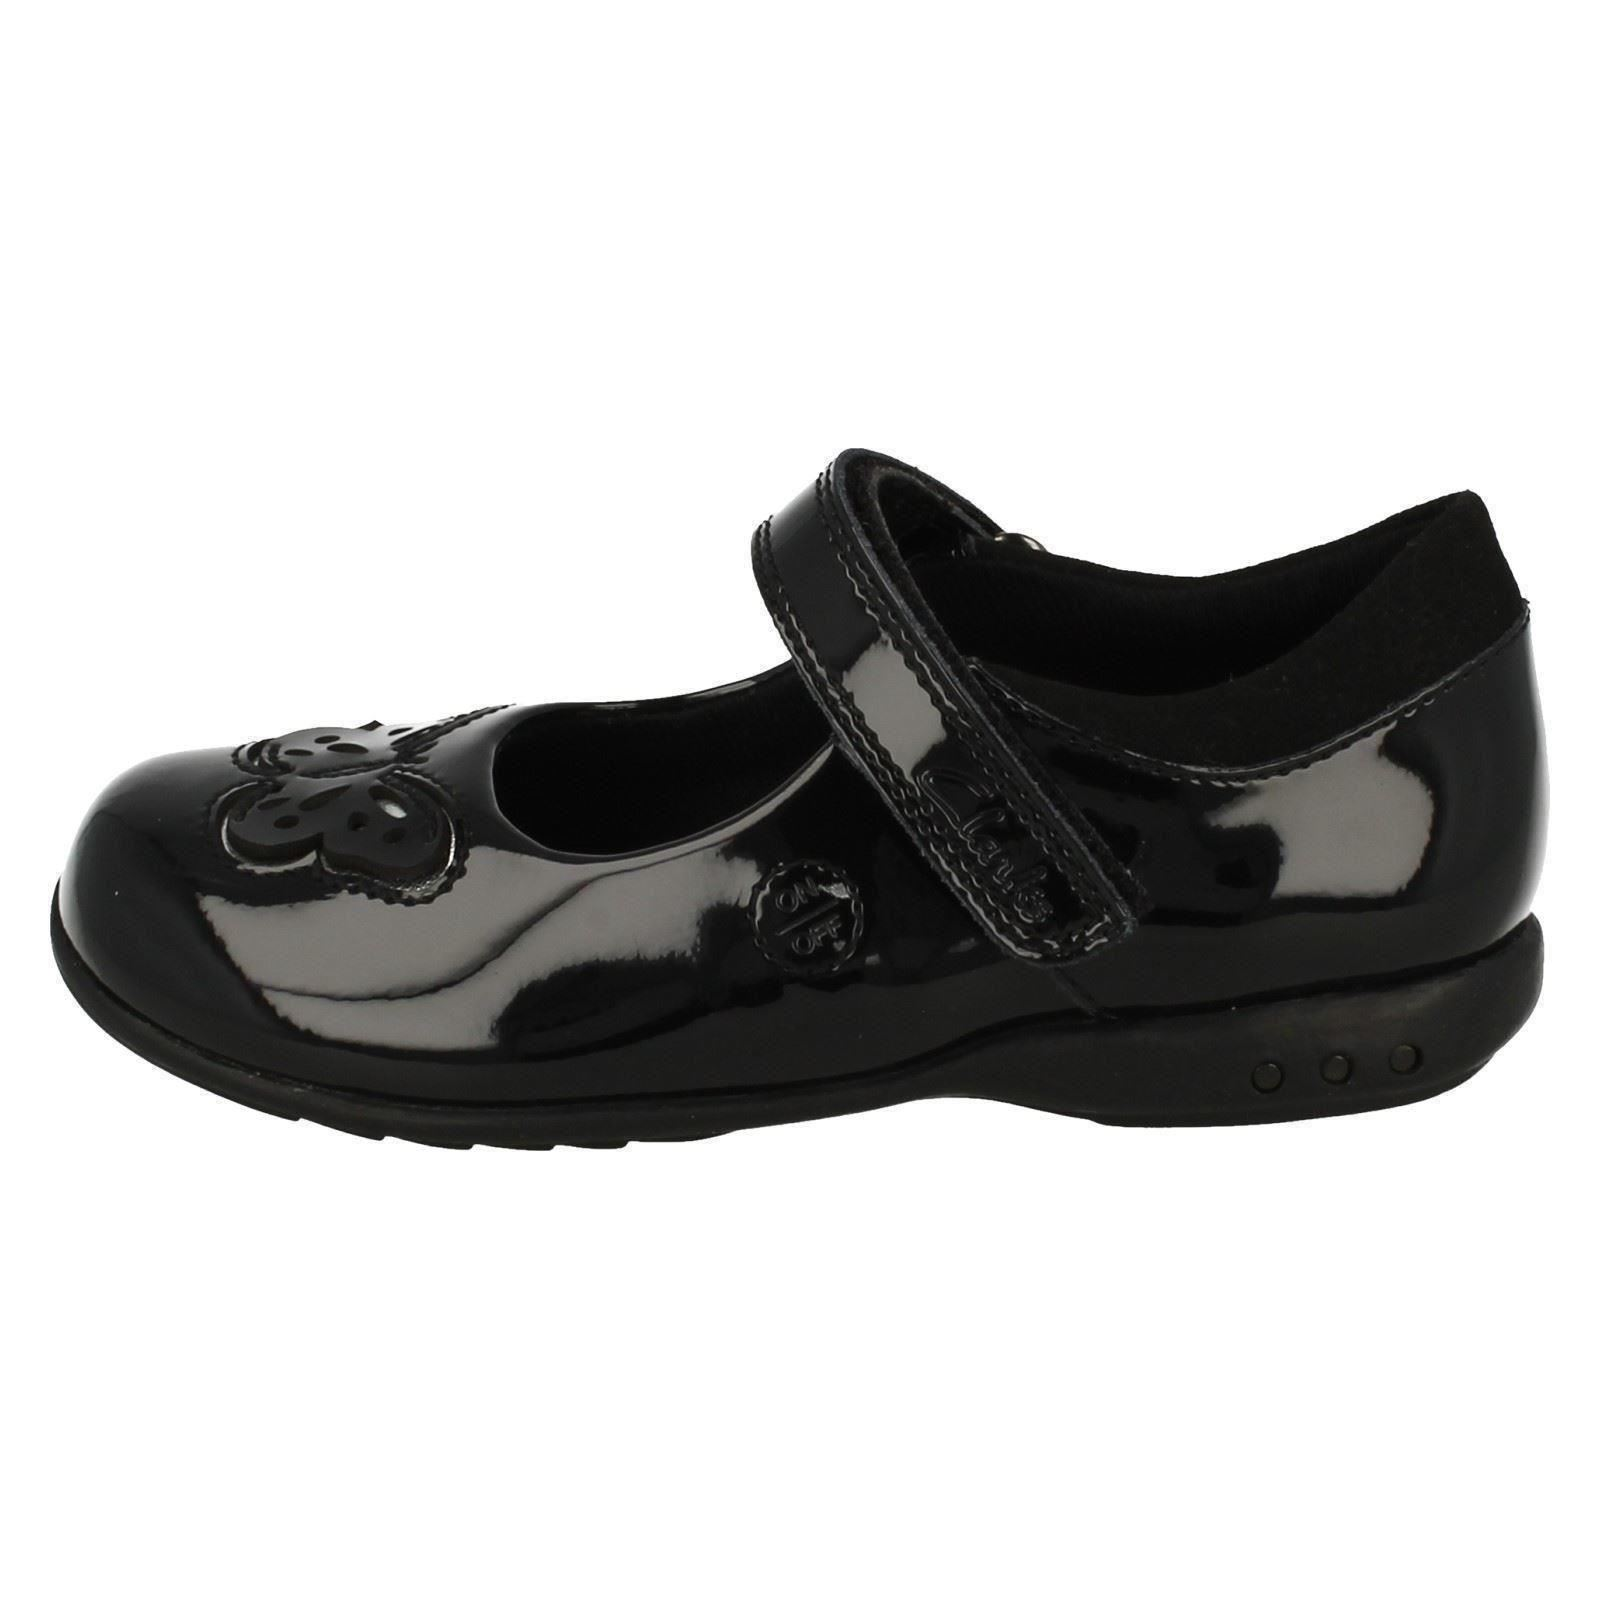 Trixi Rose G /& H Fitting Girls Clarks Black Leather Light Up School Shoes F